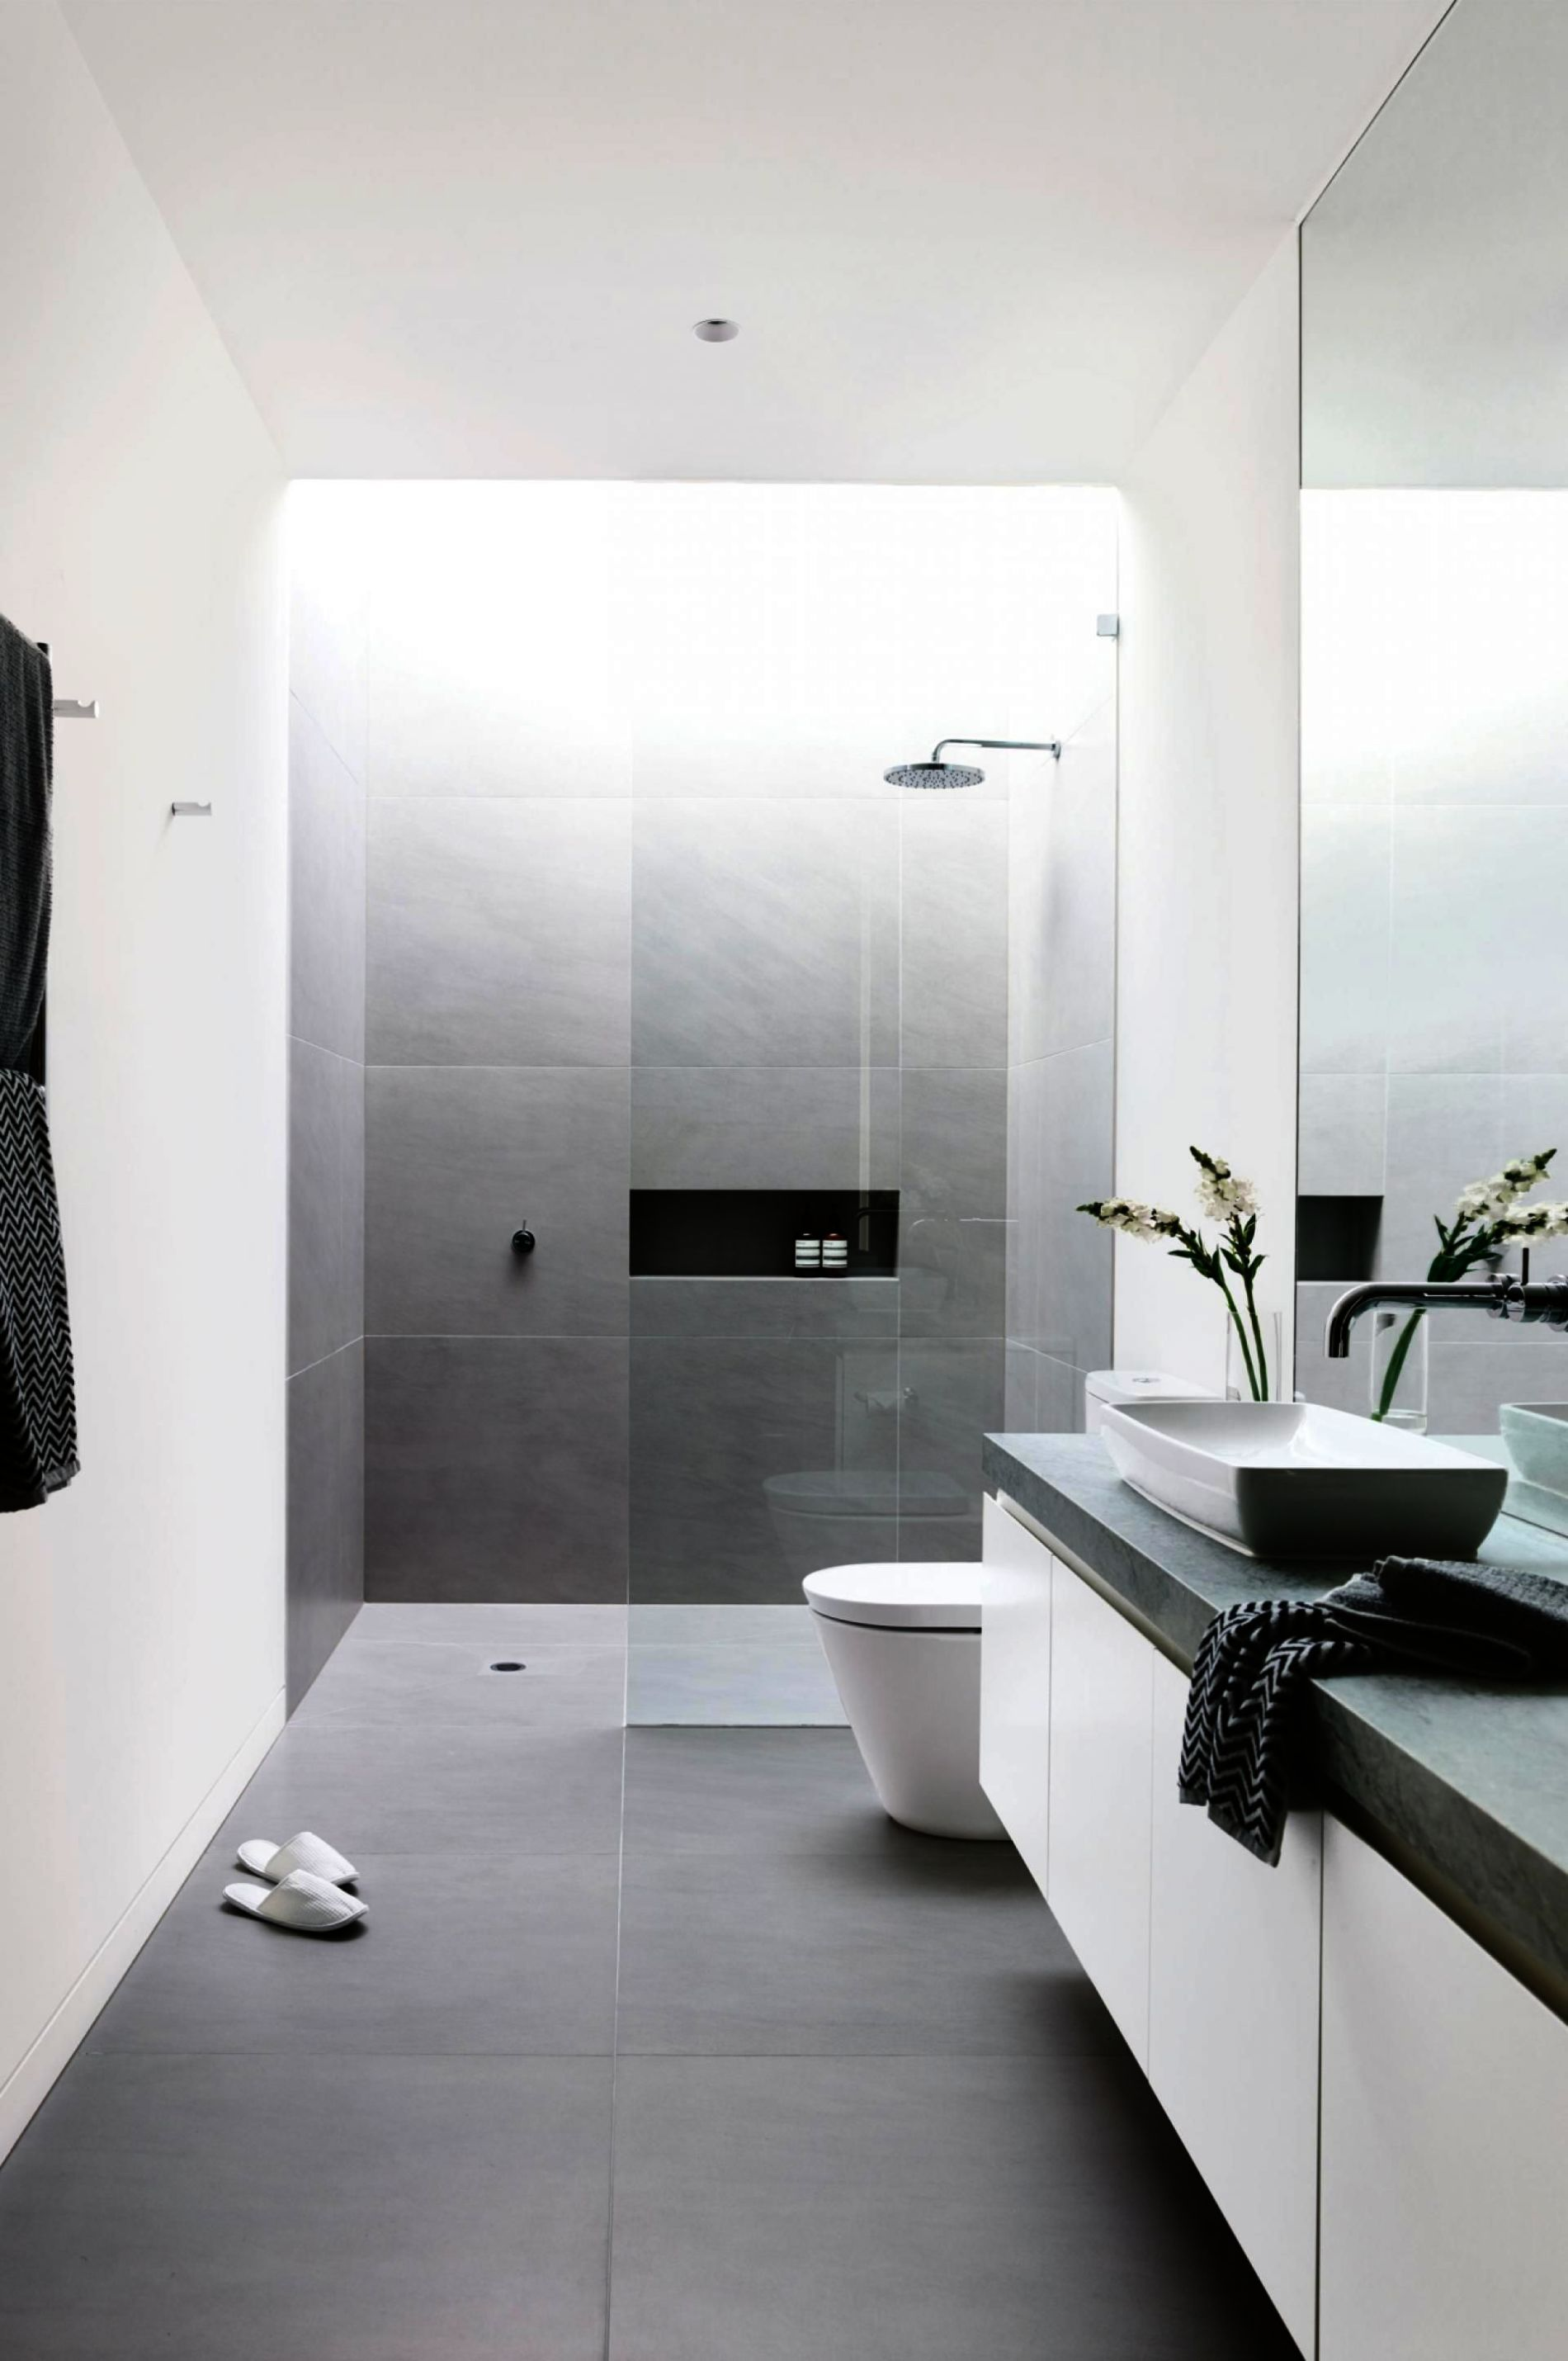 Modern Bathrooms For Apartments Contemporary European Bathrooms Minimalist Bathroom Minimalist Bathroom Design Modern Bathroom